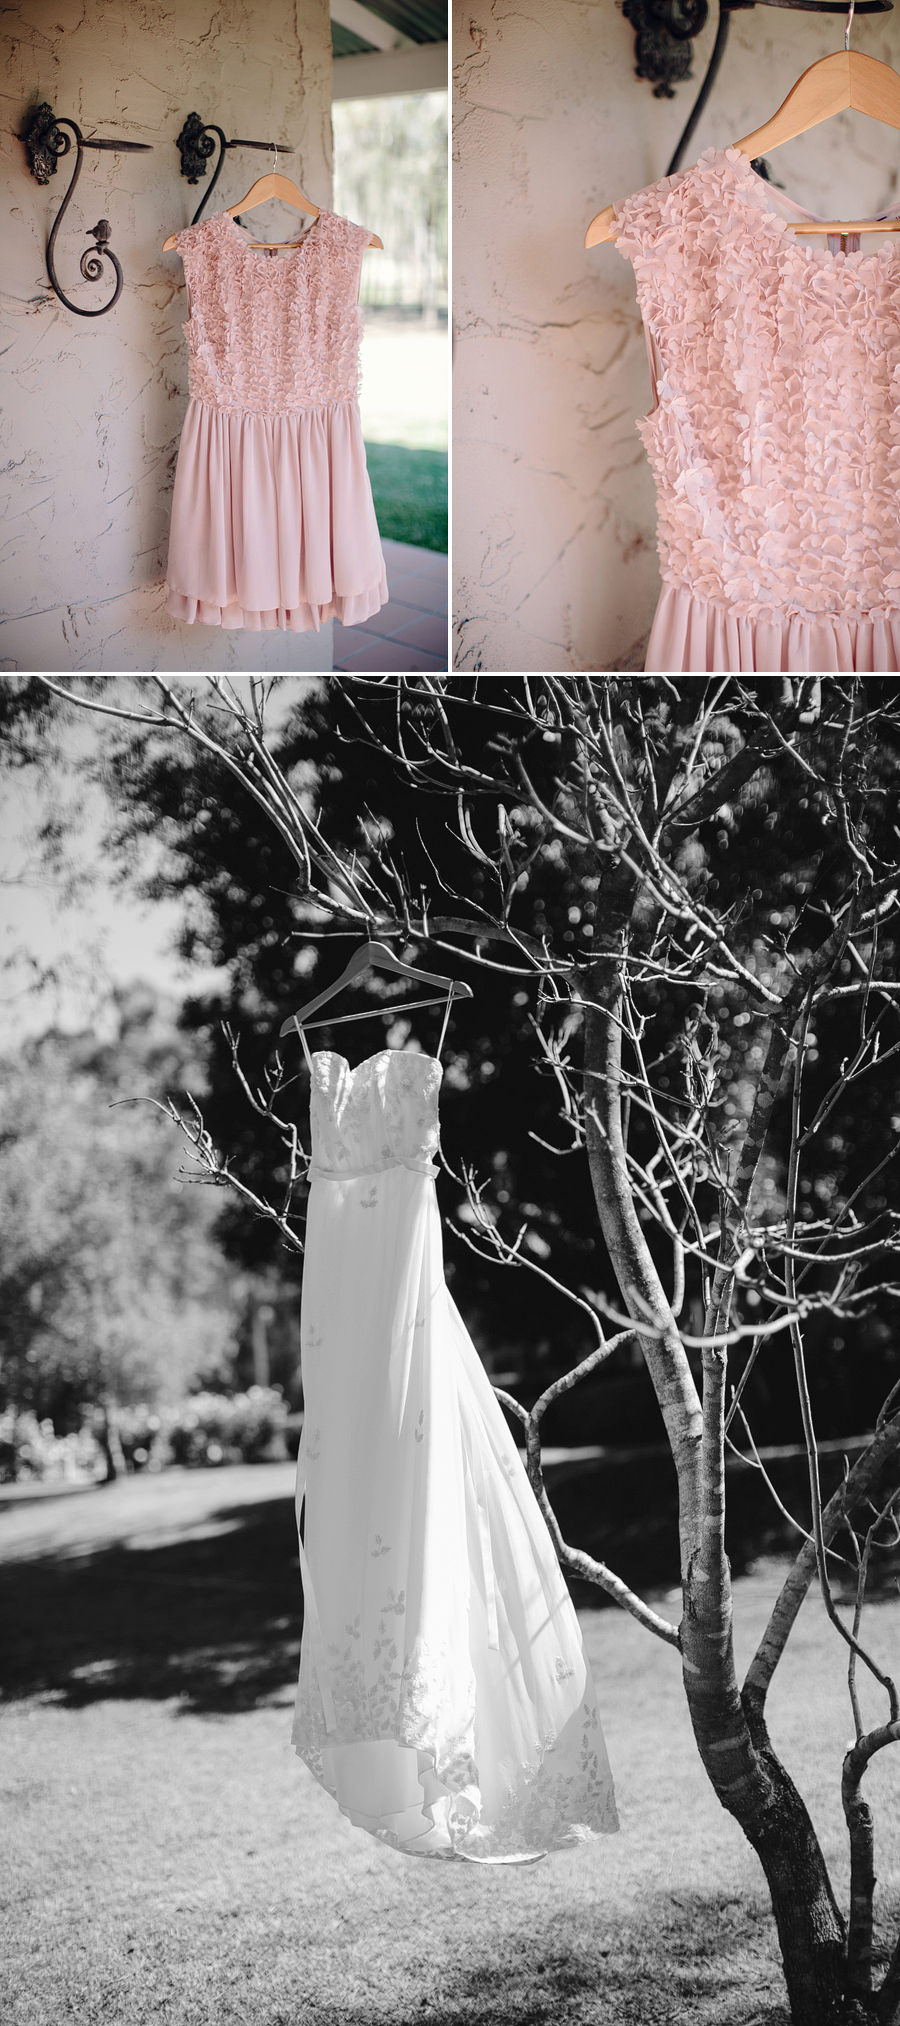 Thistle Hill Wedding Photographer: Wedding dress hanging in tree